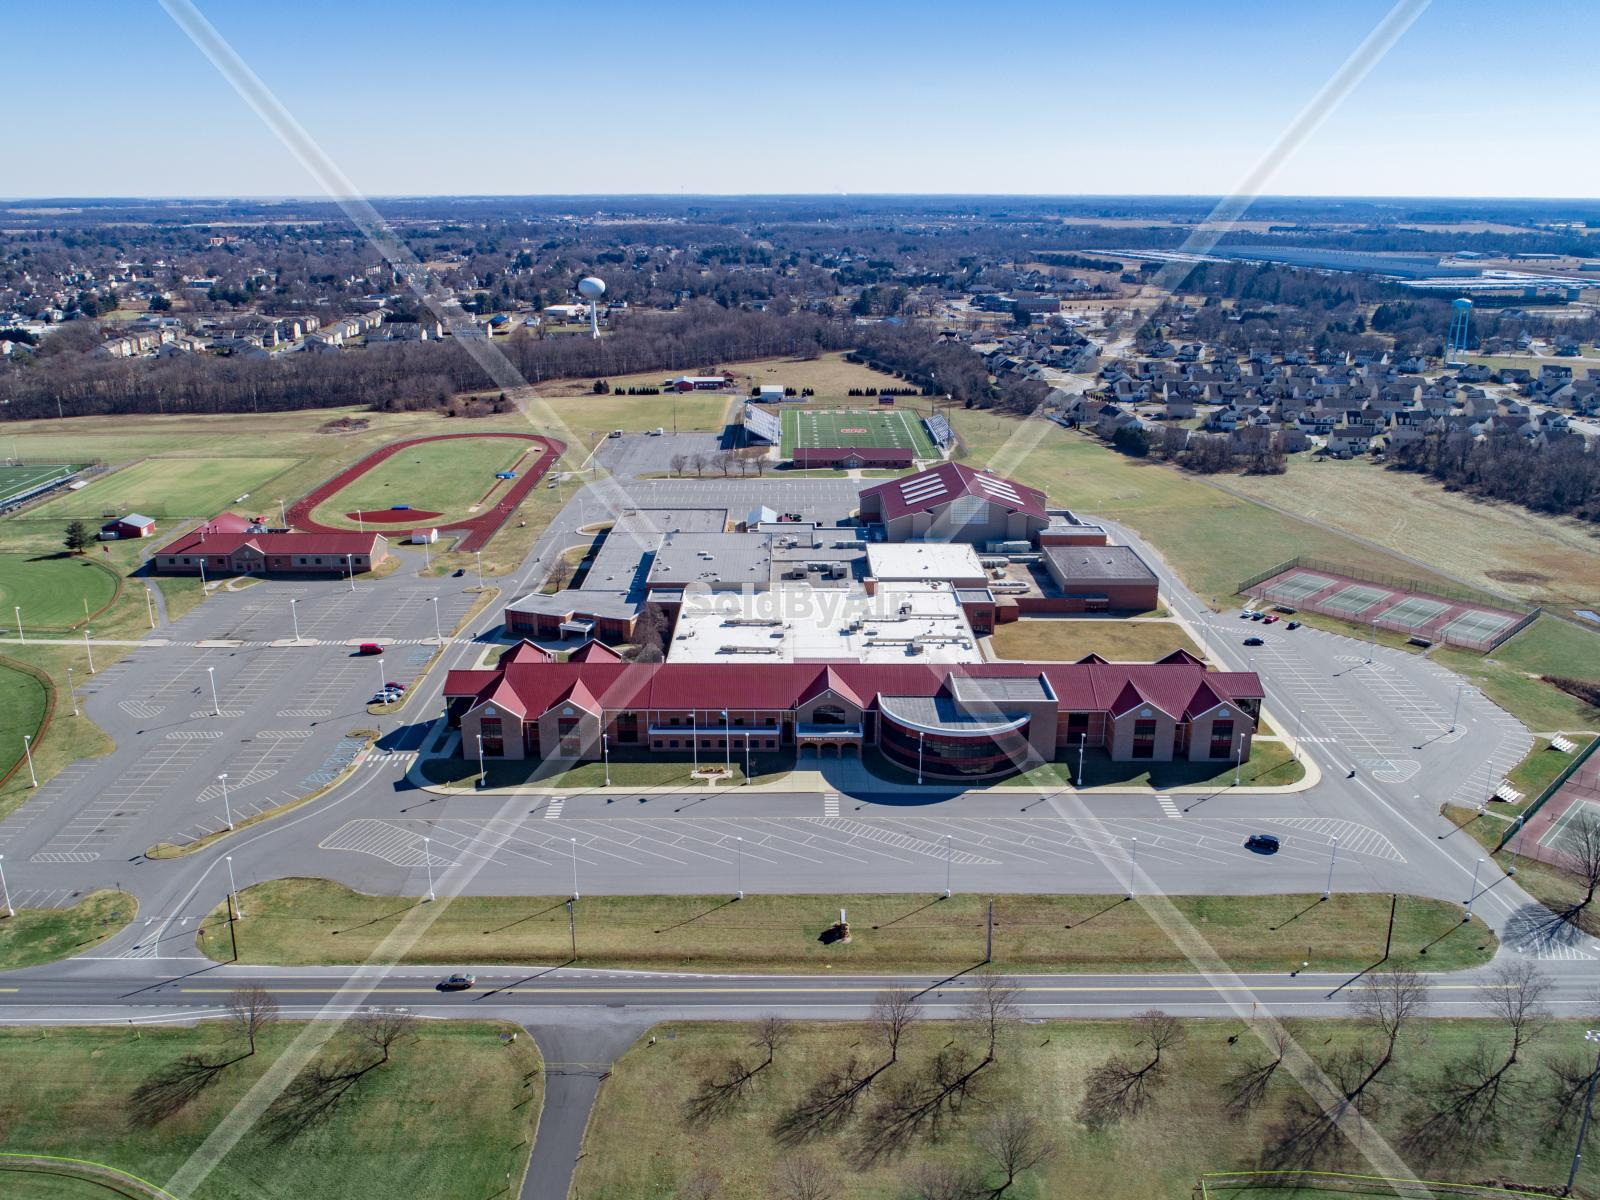 Drone Photo of Smyrna High School in Smyrna Delaware